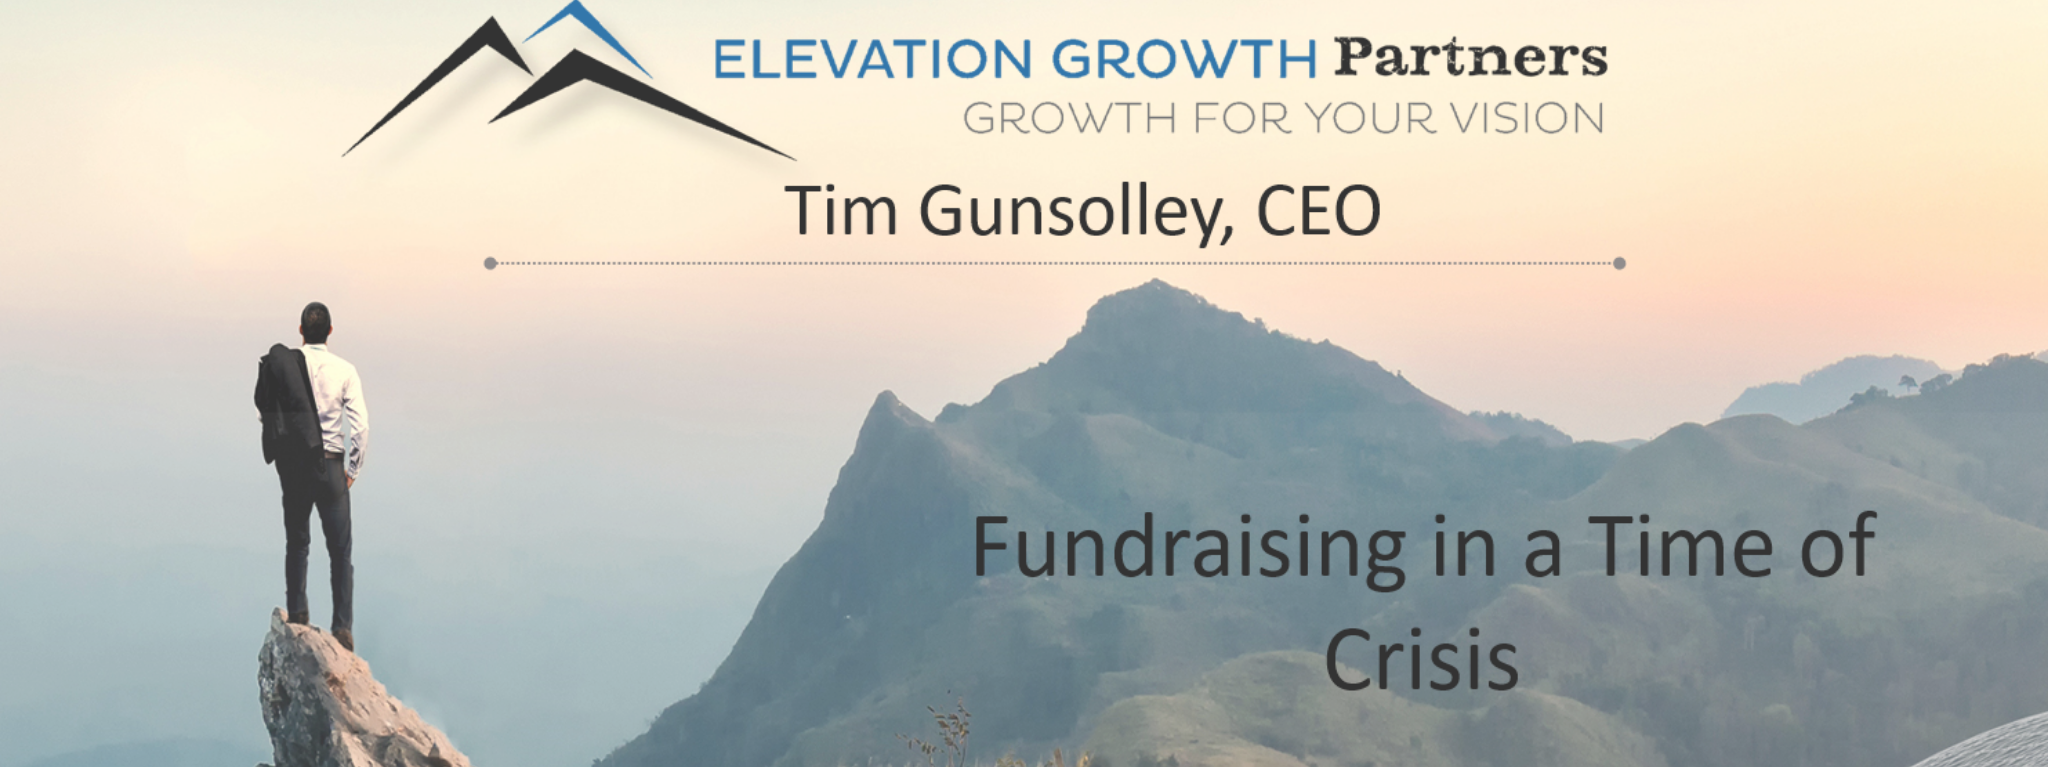 [Webinar] How to Fundraise in a Time of Crisis